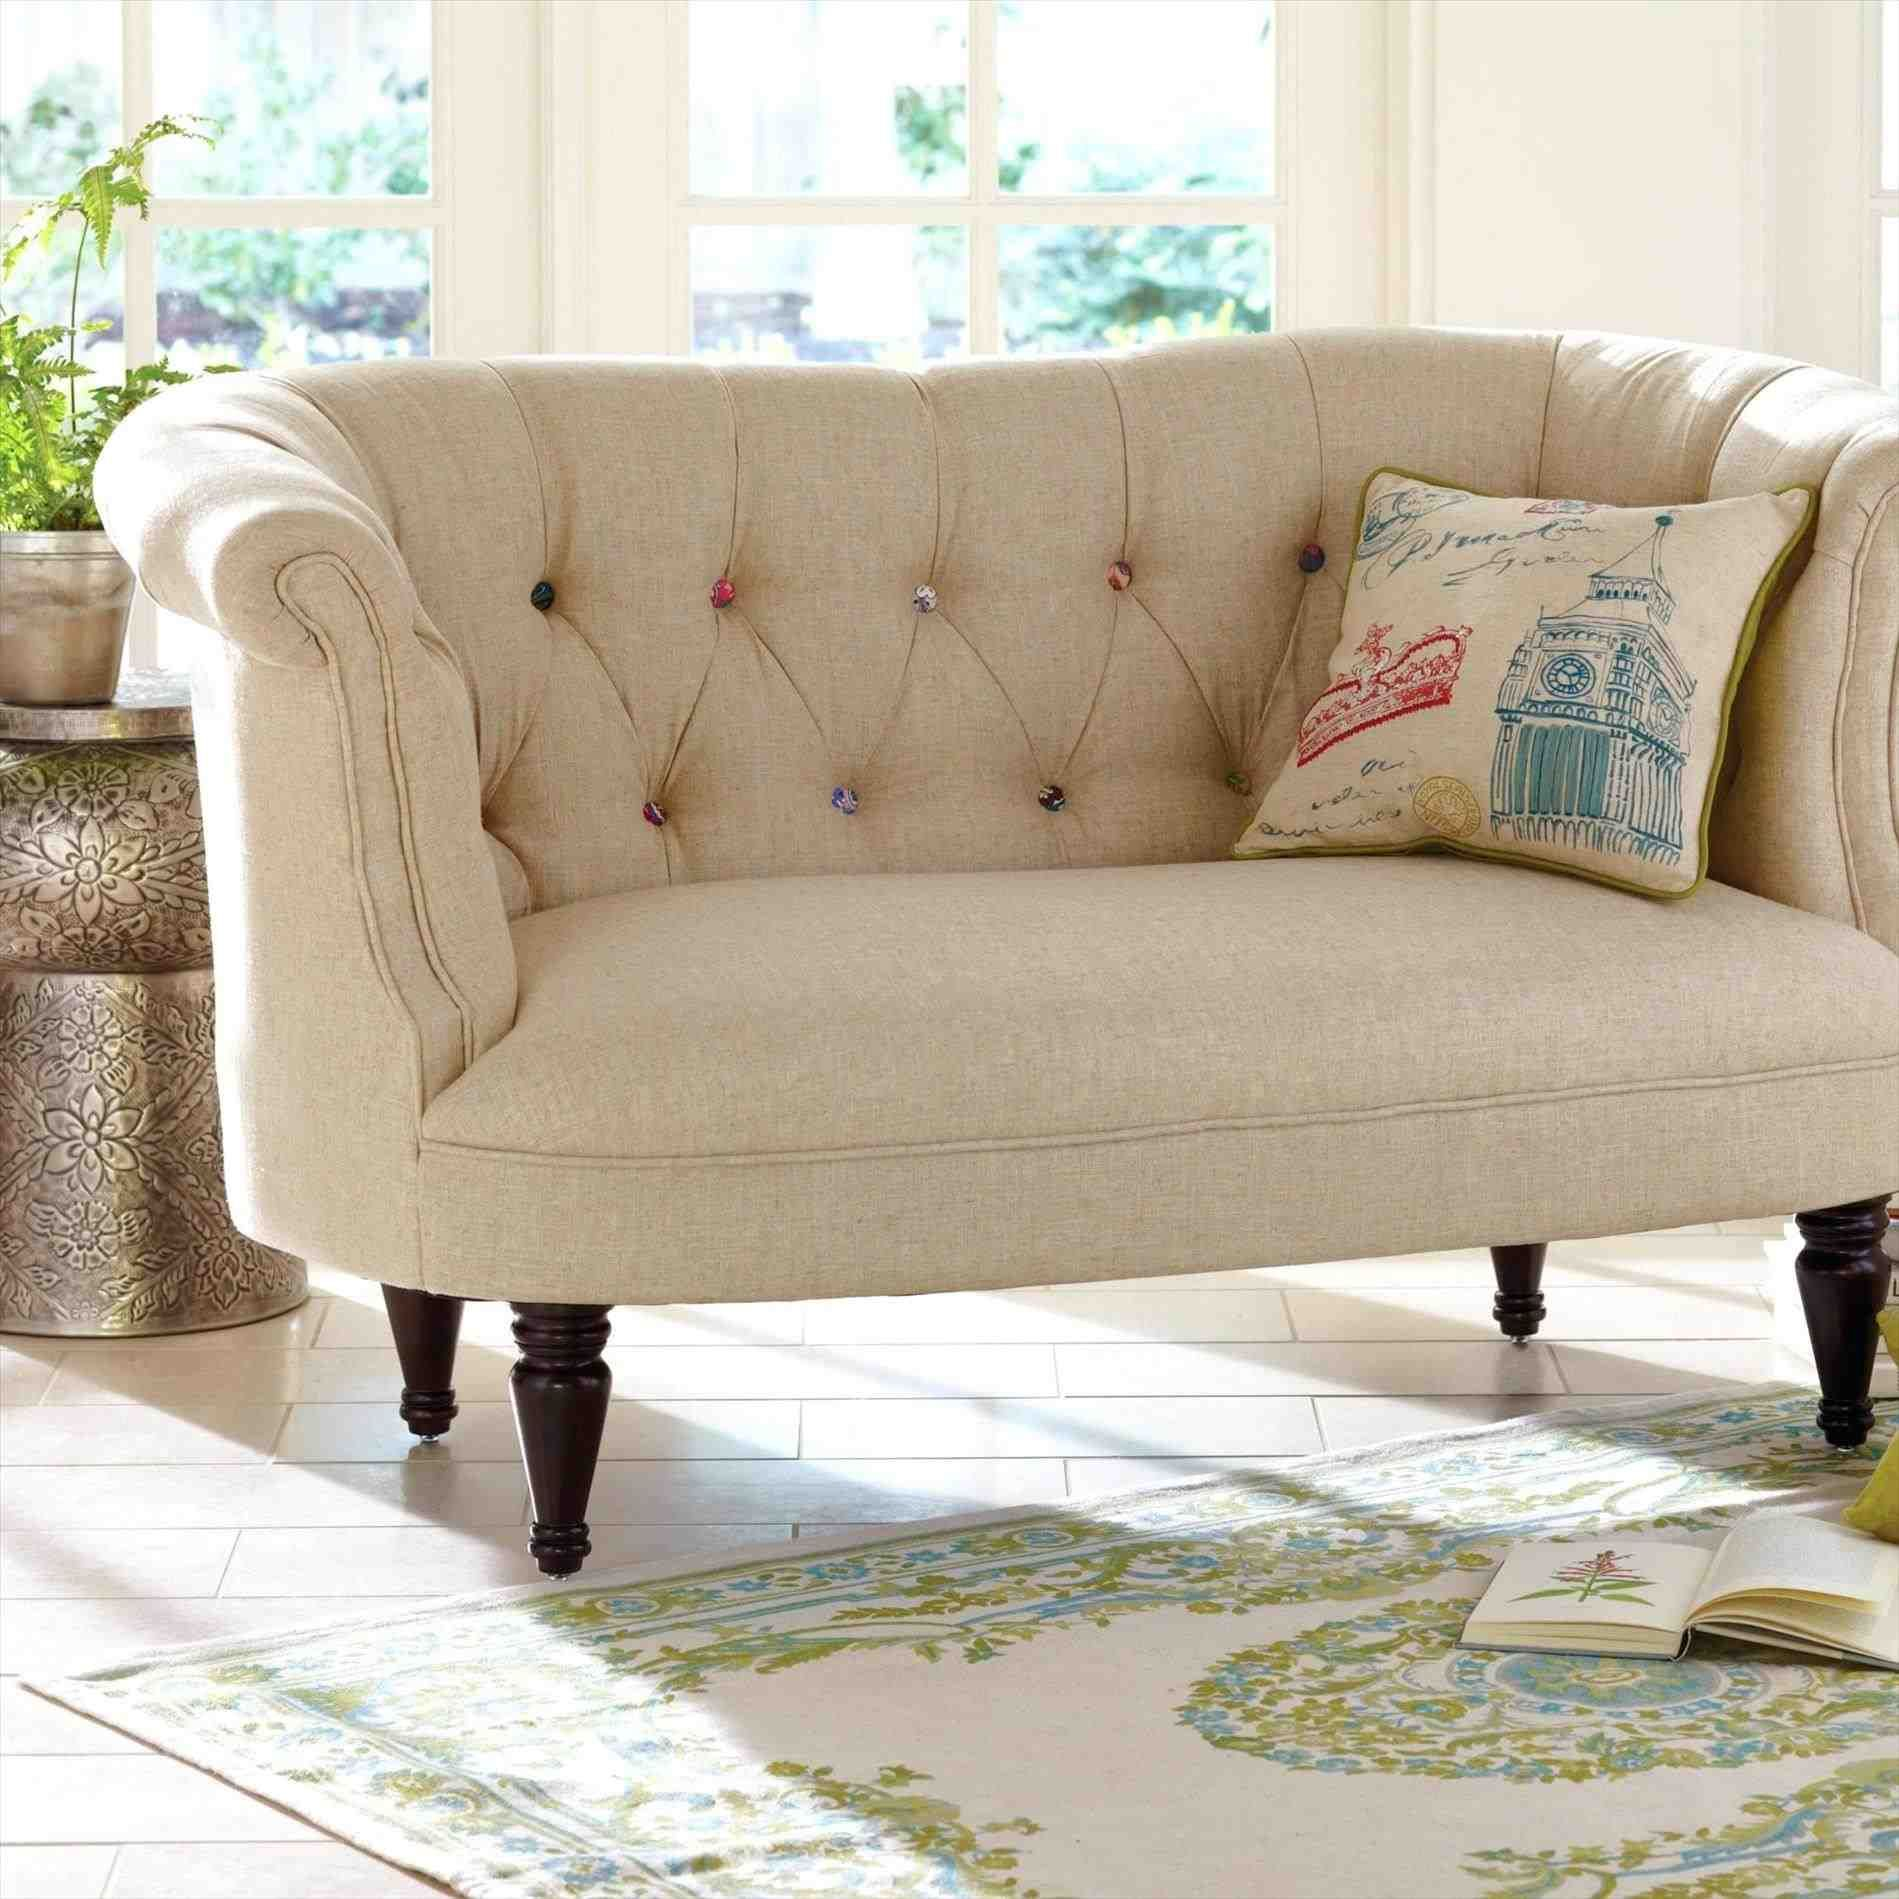 Cheap Loveseats Near Me With Images Love Seat Furniture